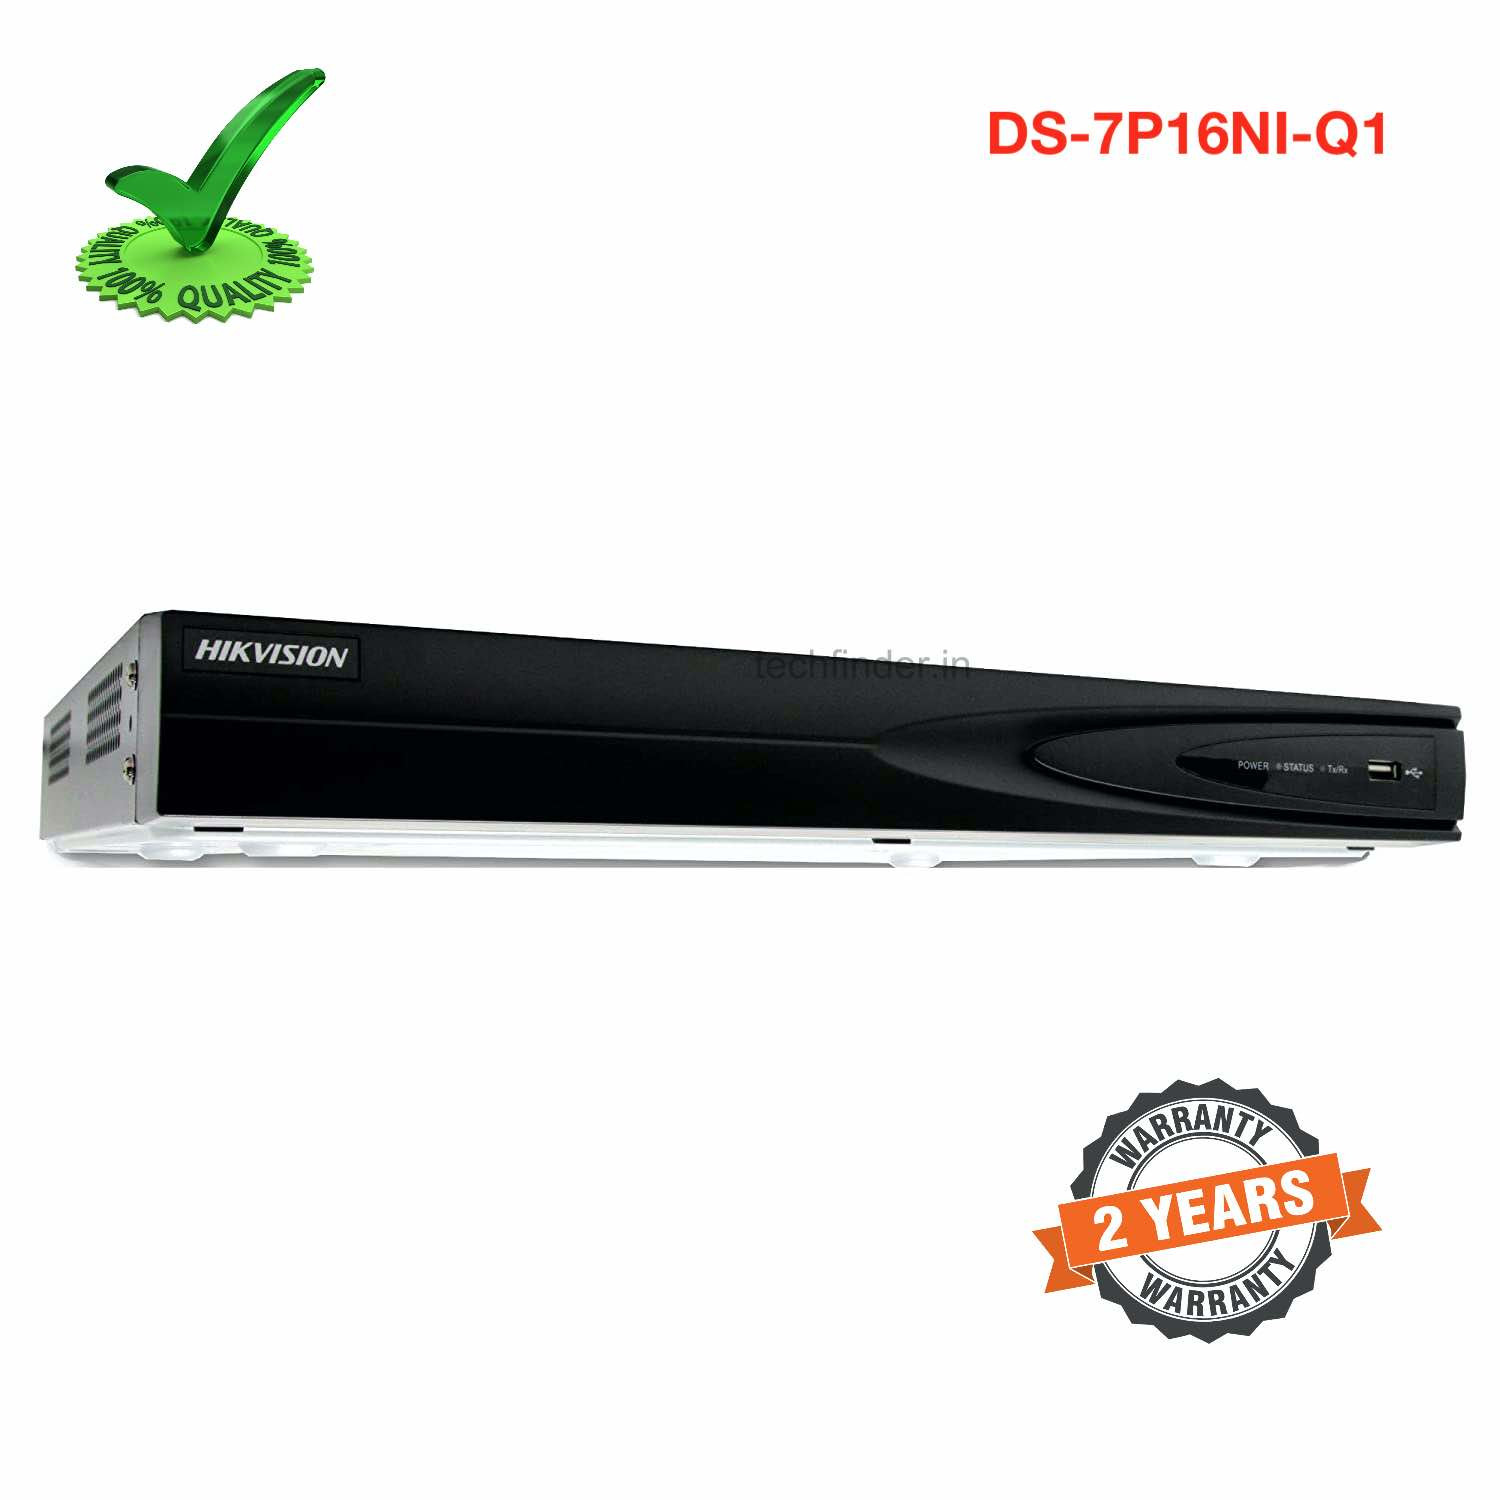 Hikvision DS-7P16NI-Q1 Hdmi 16ch 4k Network video recorder